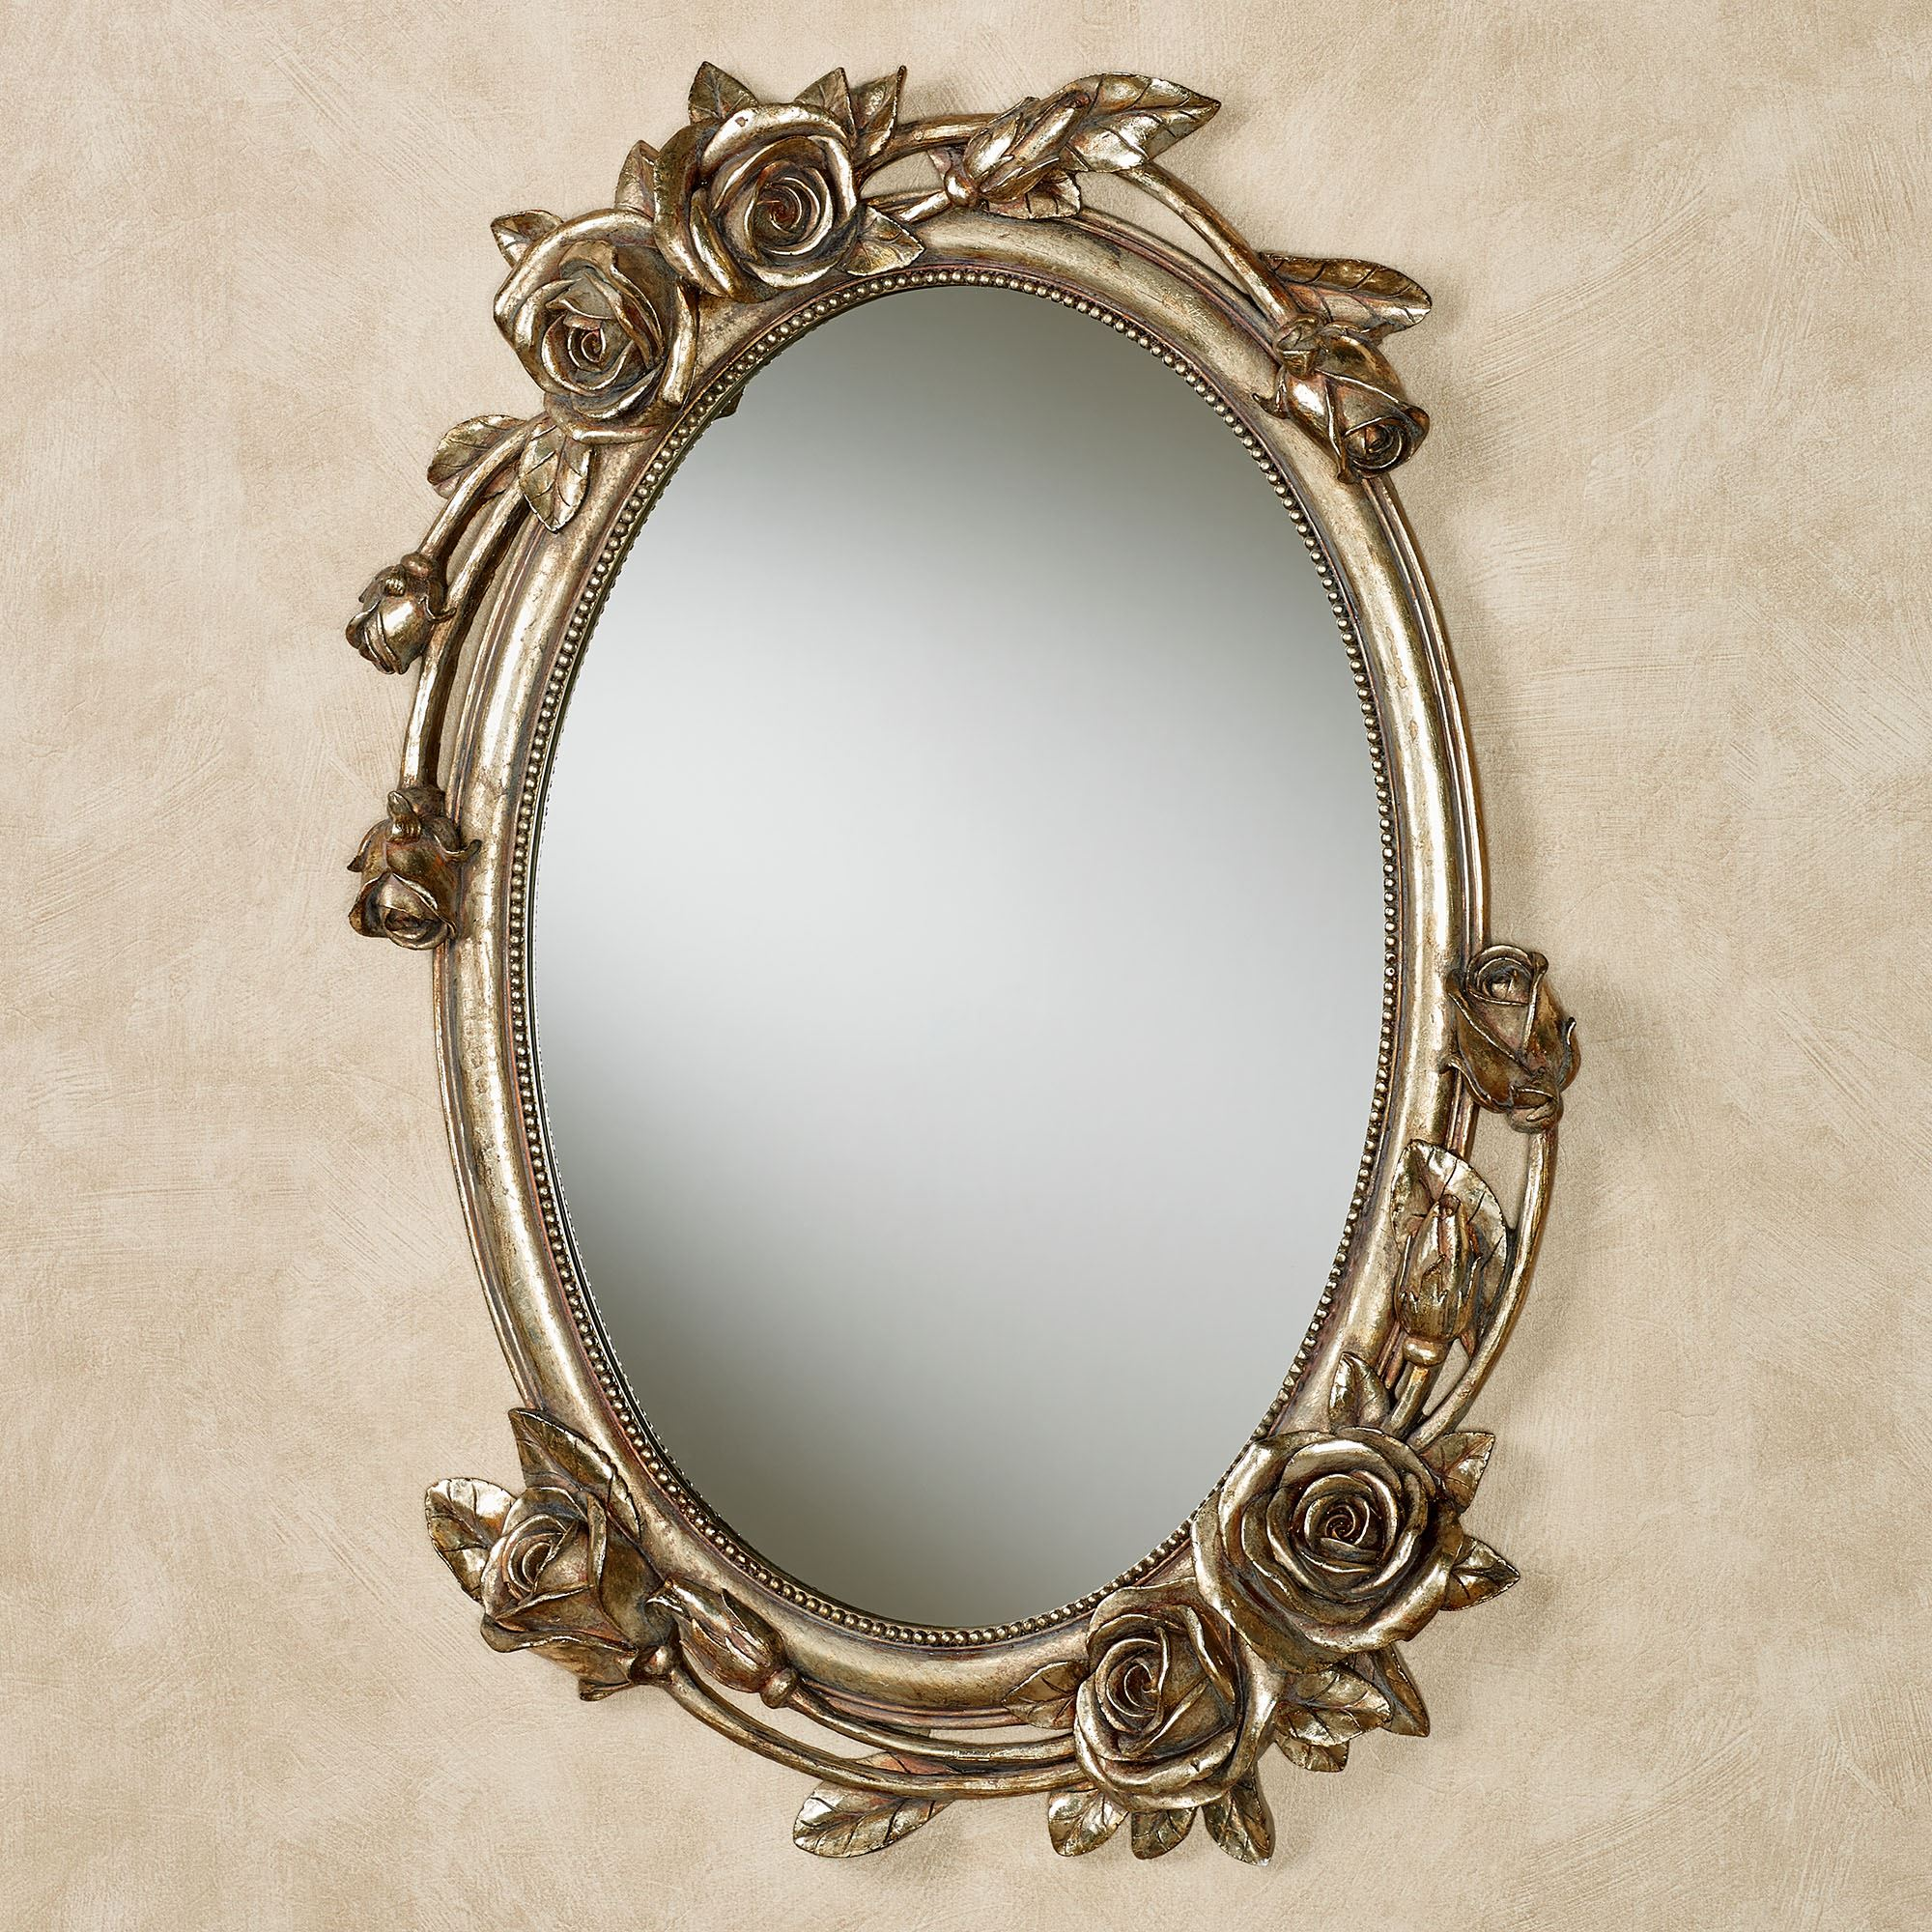 Rose melody venetian gold floral oval wall mirror for Oval wall mirror